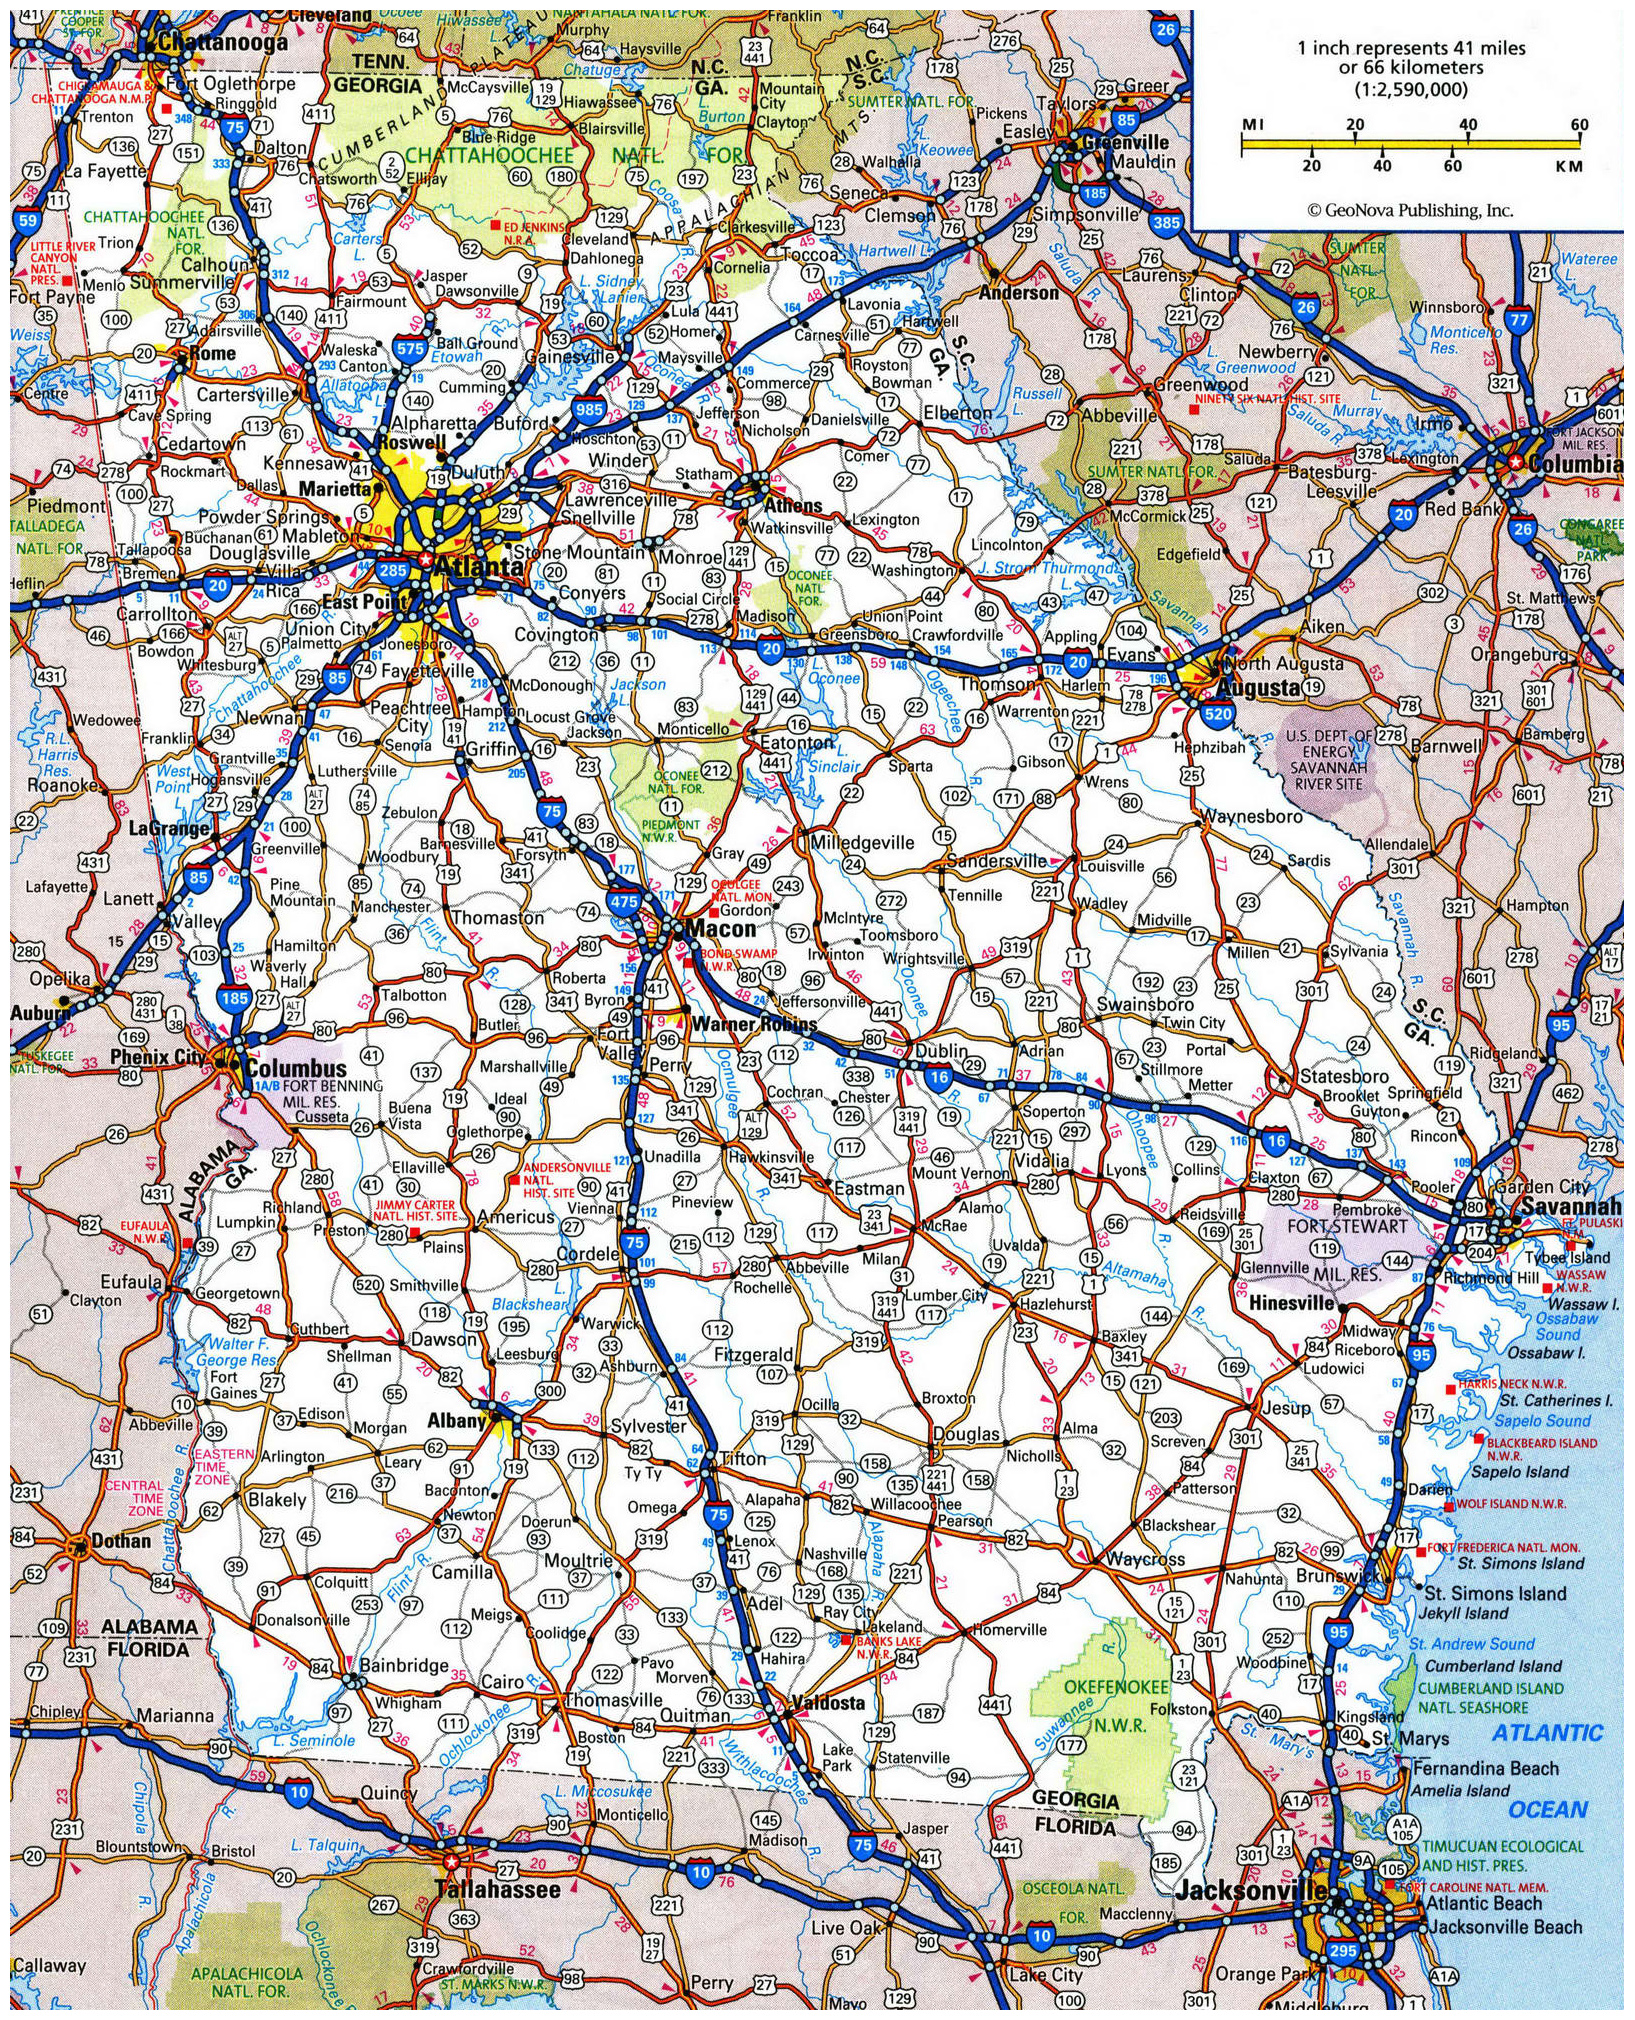 Highway Map Of Georgia.Large Roads And Highways Map Of Georgia State Georgia State